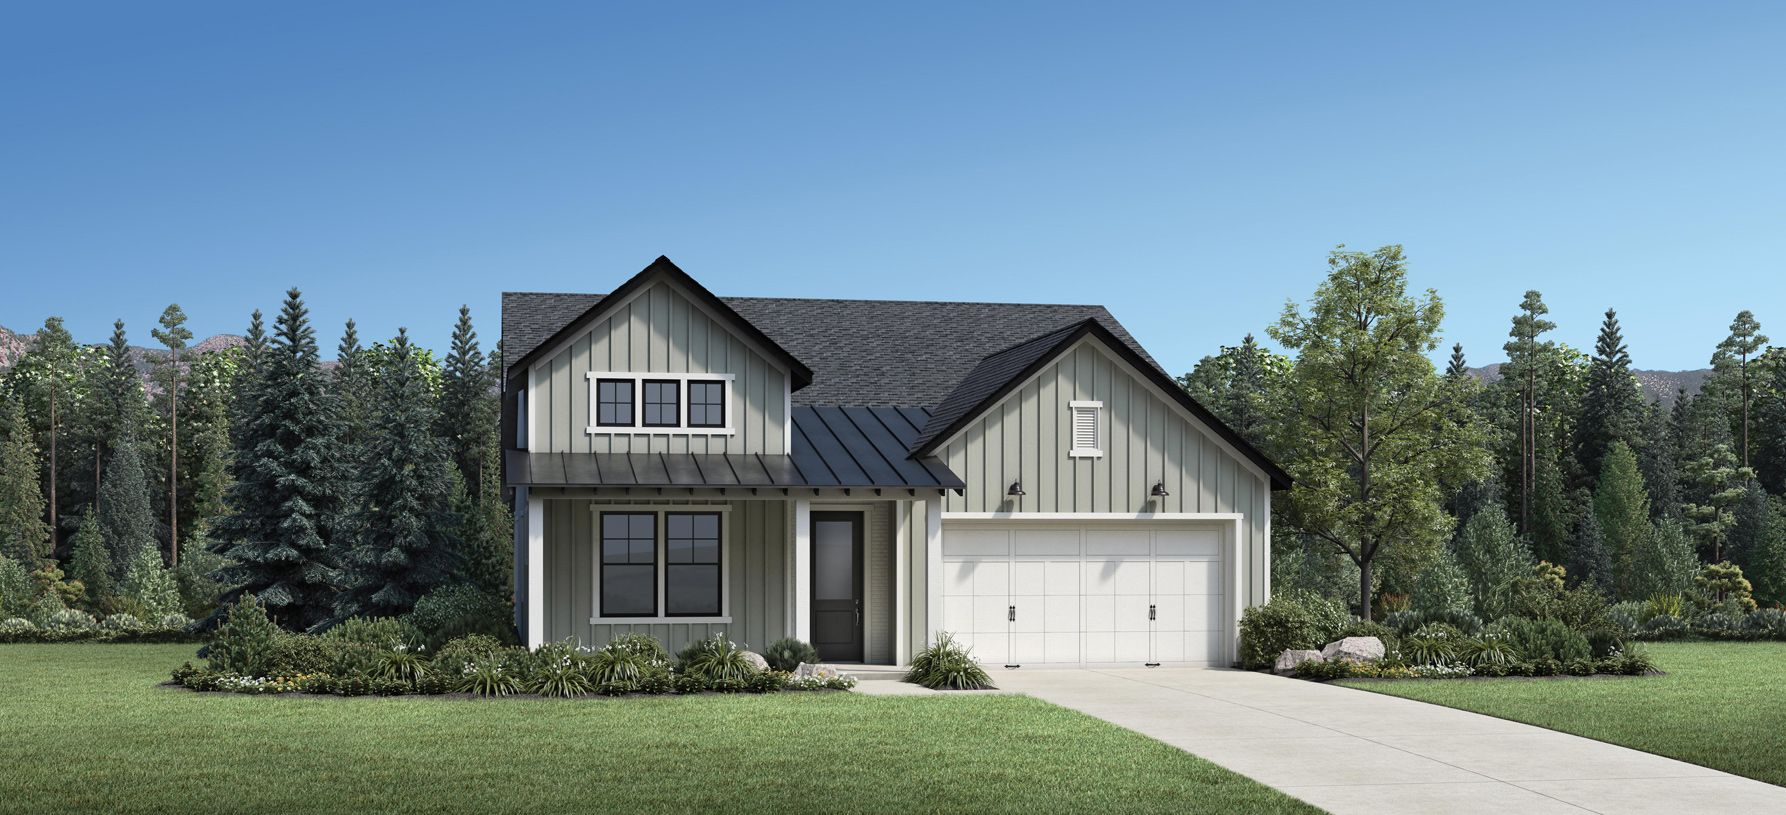 Elevation Image:The Modern Farmhouse